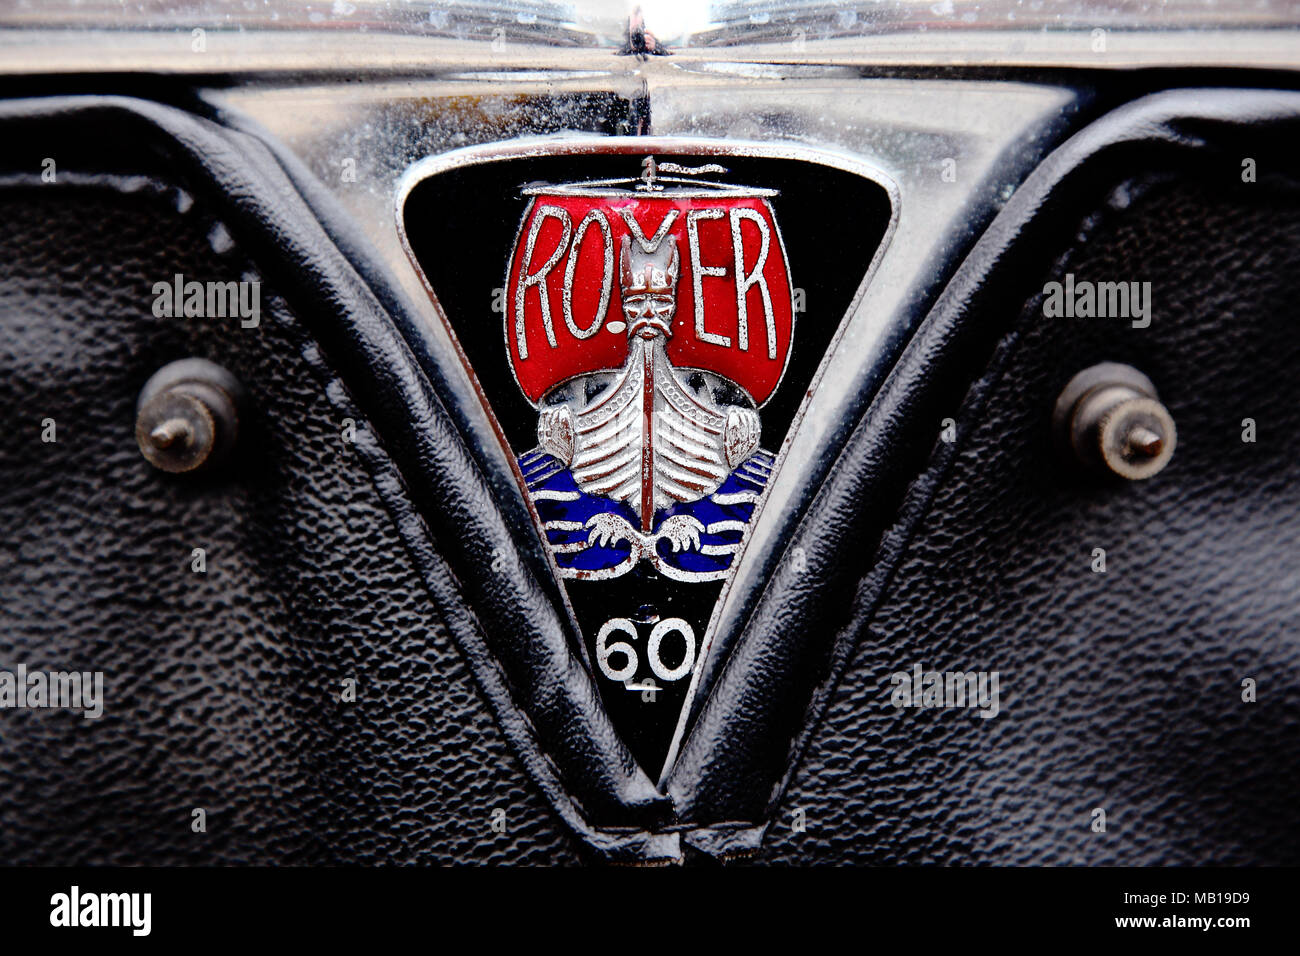 Vintage Rover logo of viking ship branding on a Rover 60 hood ornament. - Stock Image